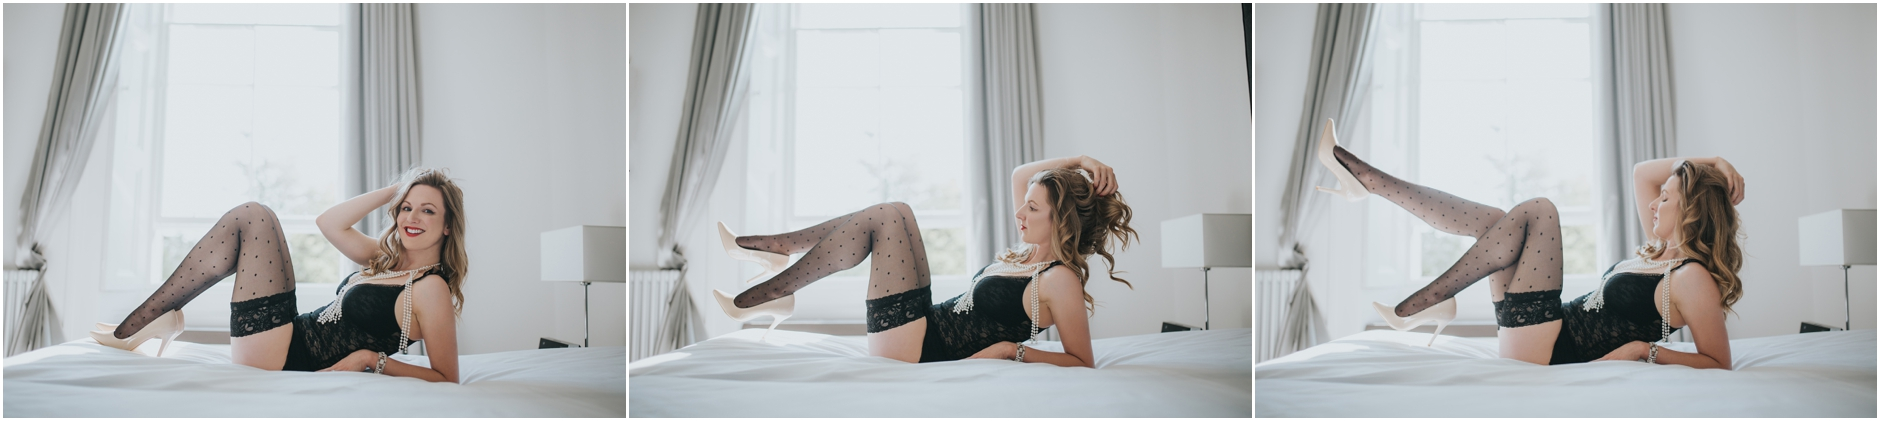 edinburgh boudoir photogrpaher